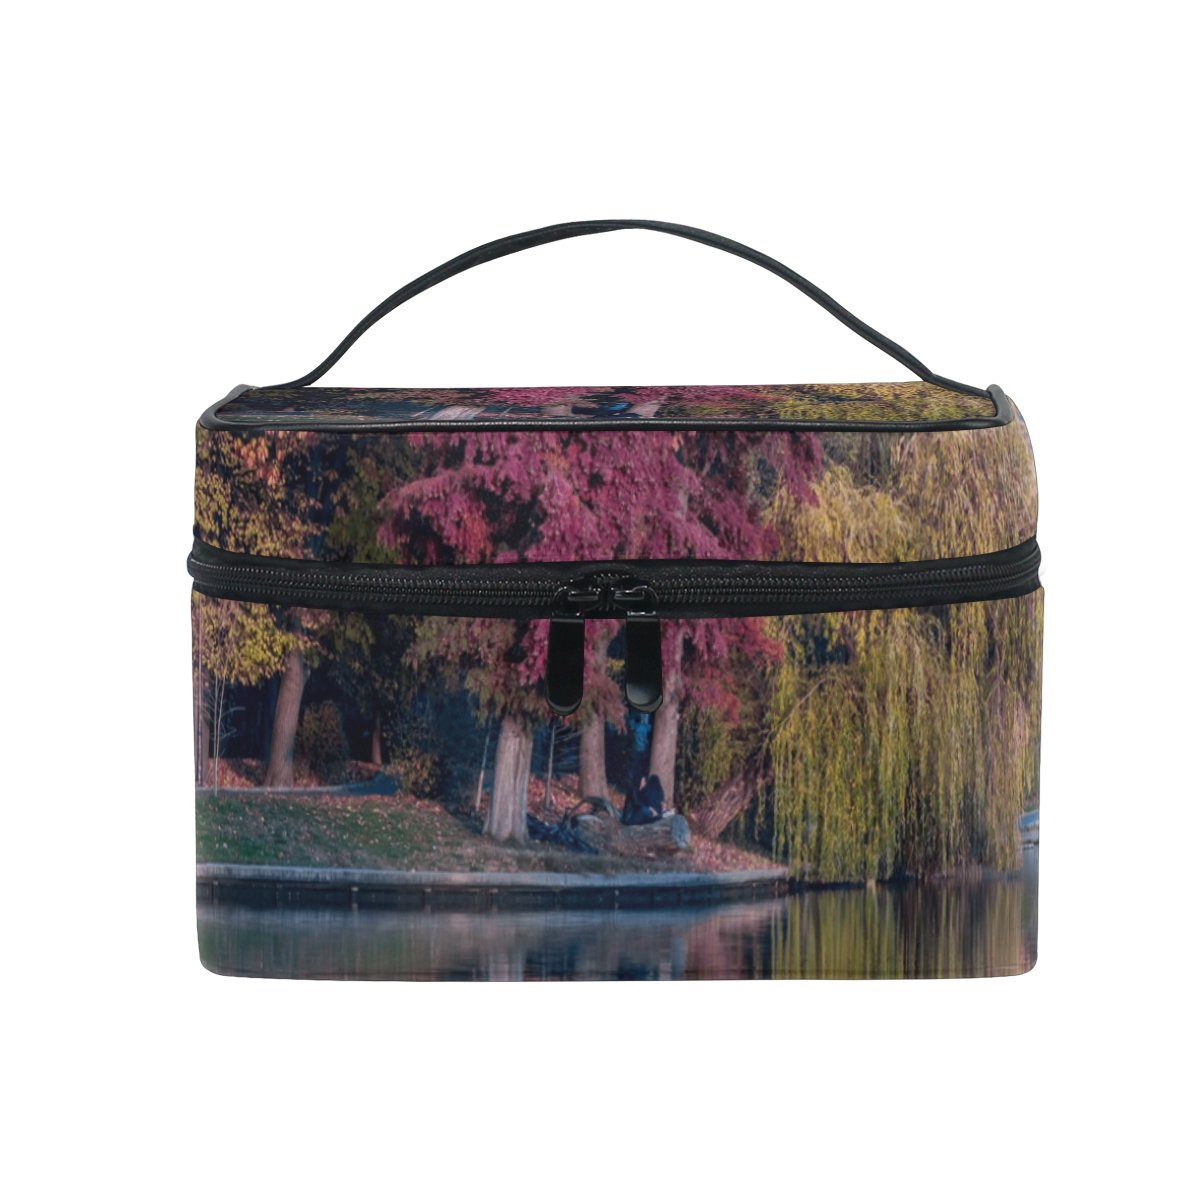 LENNEL DIY Pattern Trees Plants Nature Forest Autumn Fall Grass Makeup Case Carrying Portable Zip Travel Cosmetic Brush Bag Organizer Large for Girls Women